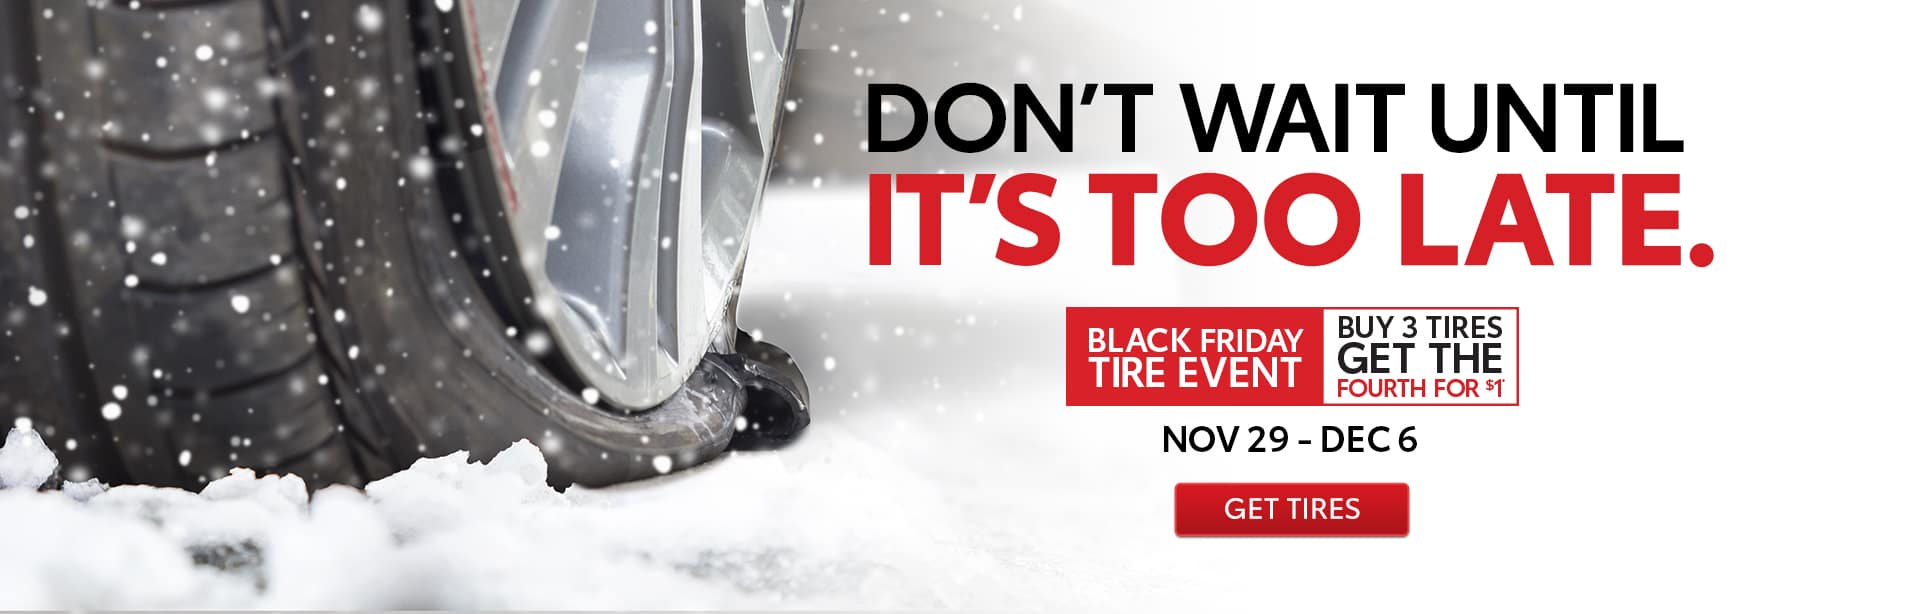 Toyota Black Friday Tire Sale